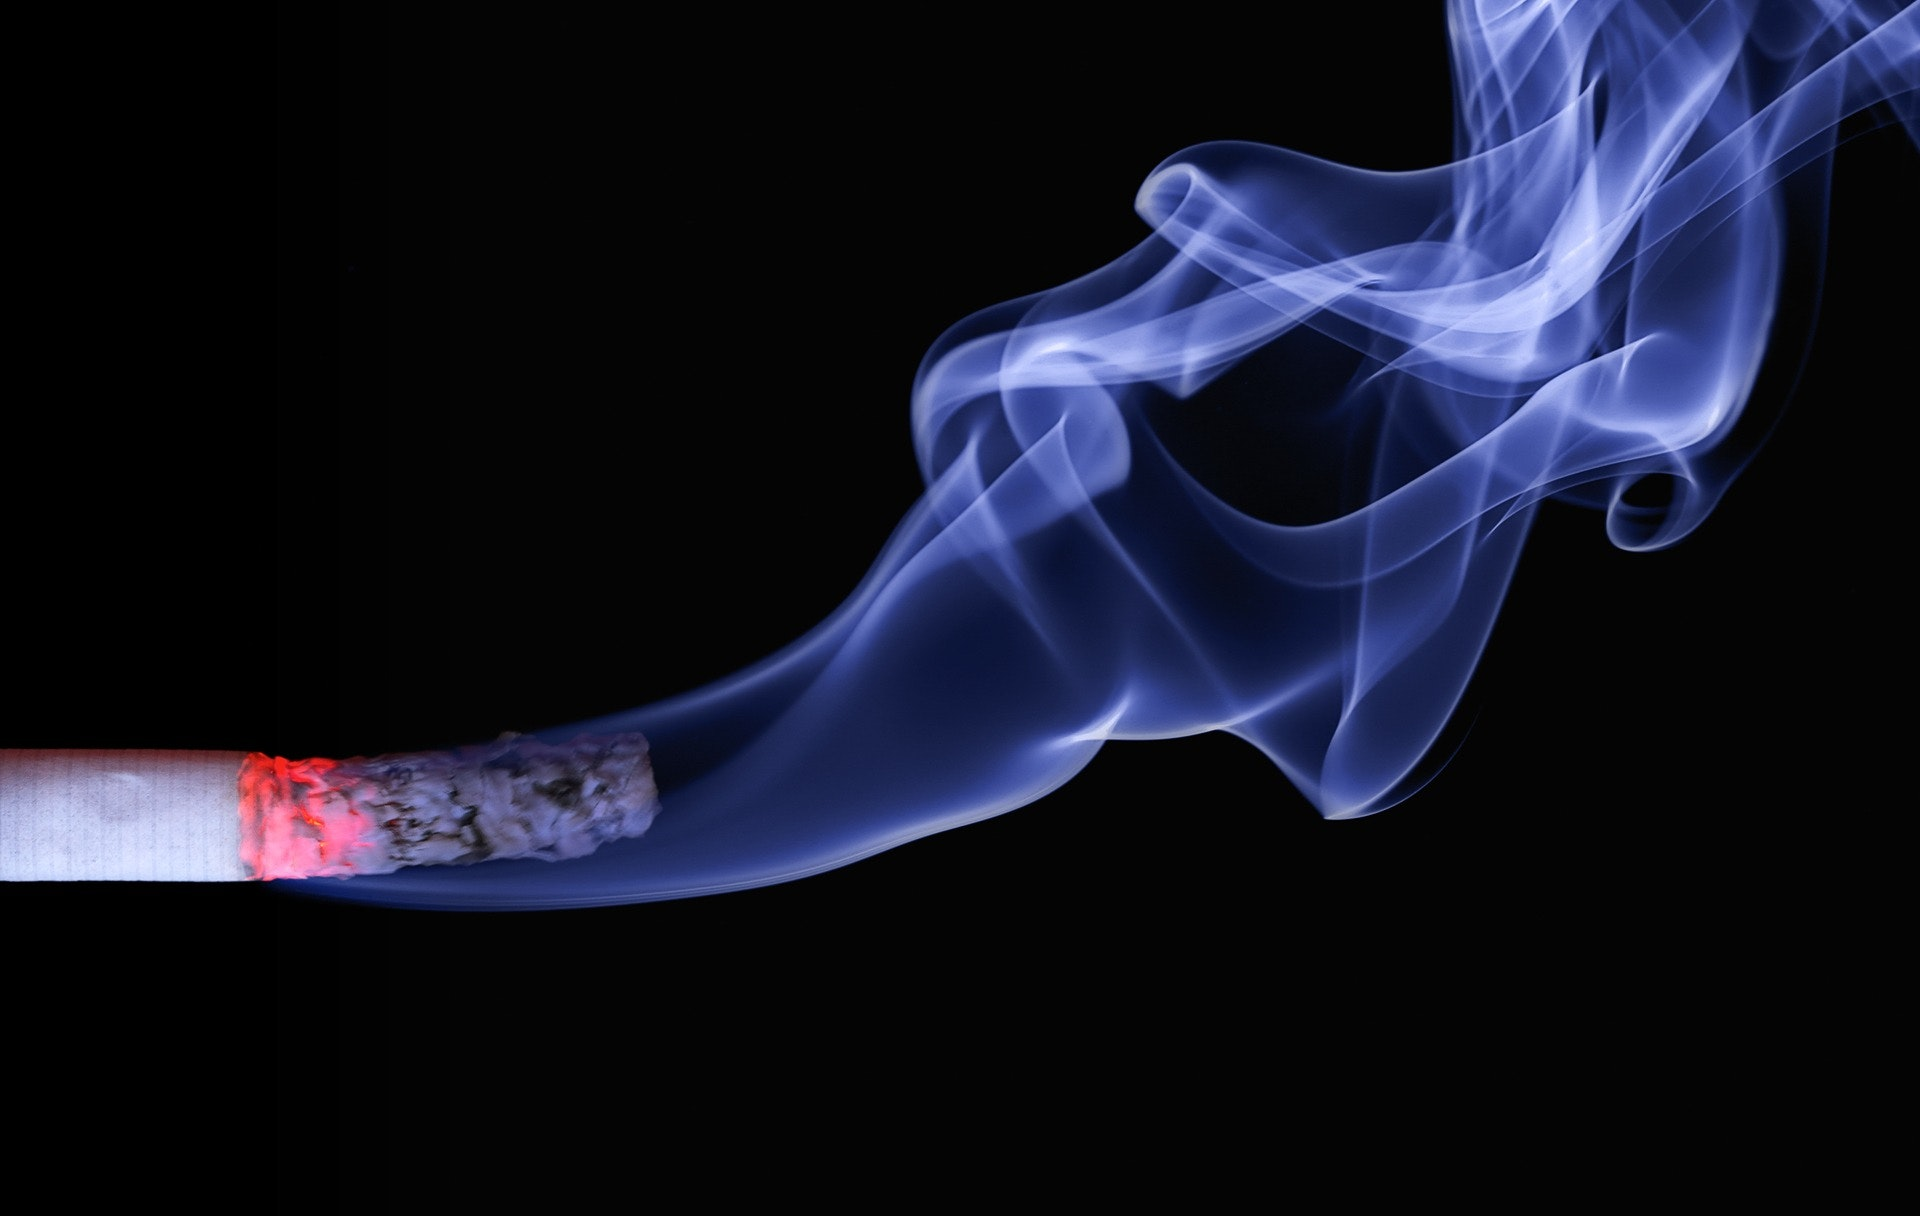 Smoking-related-to-hearing-loss